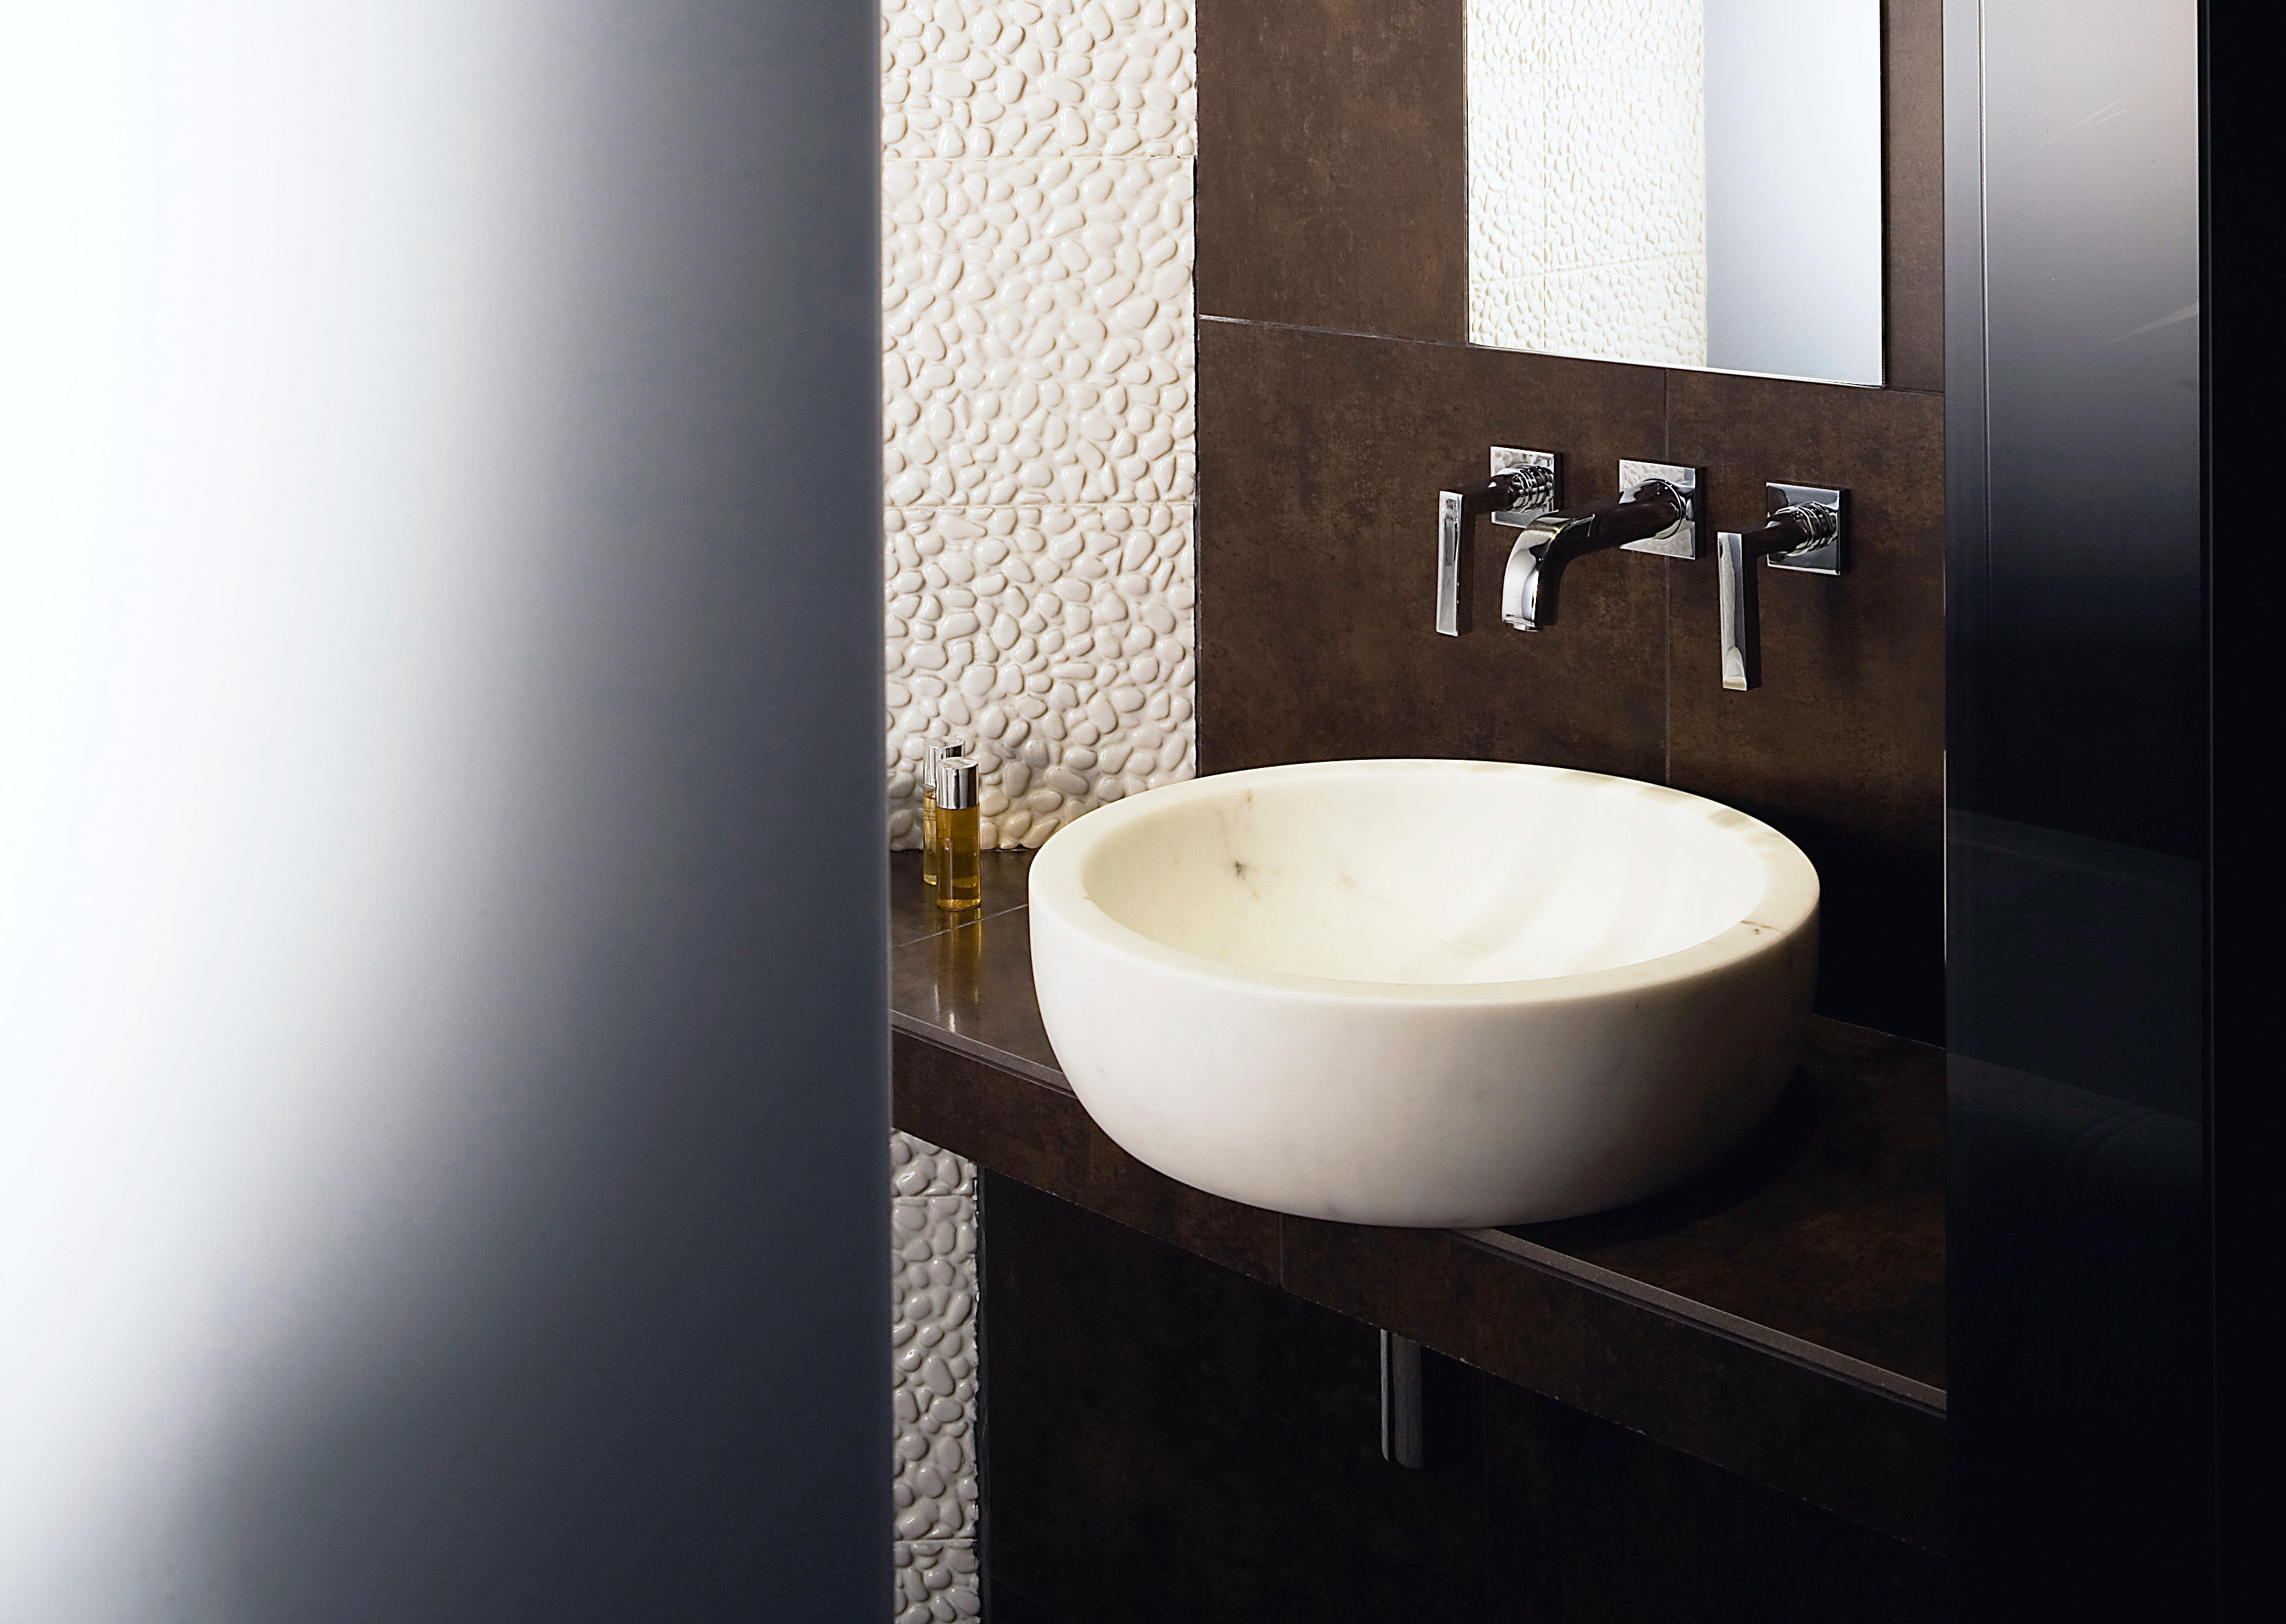 Bath Luxury Modern bathroom plumbing fixture sink bidet bathtub lighting ceramic toilet flooring